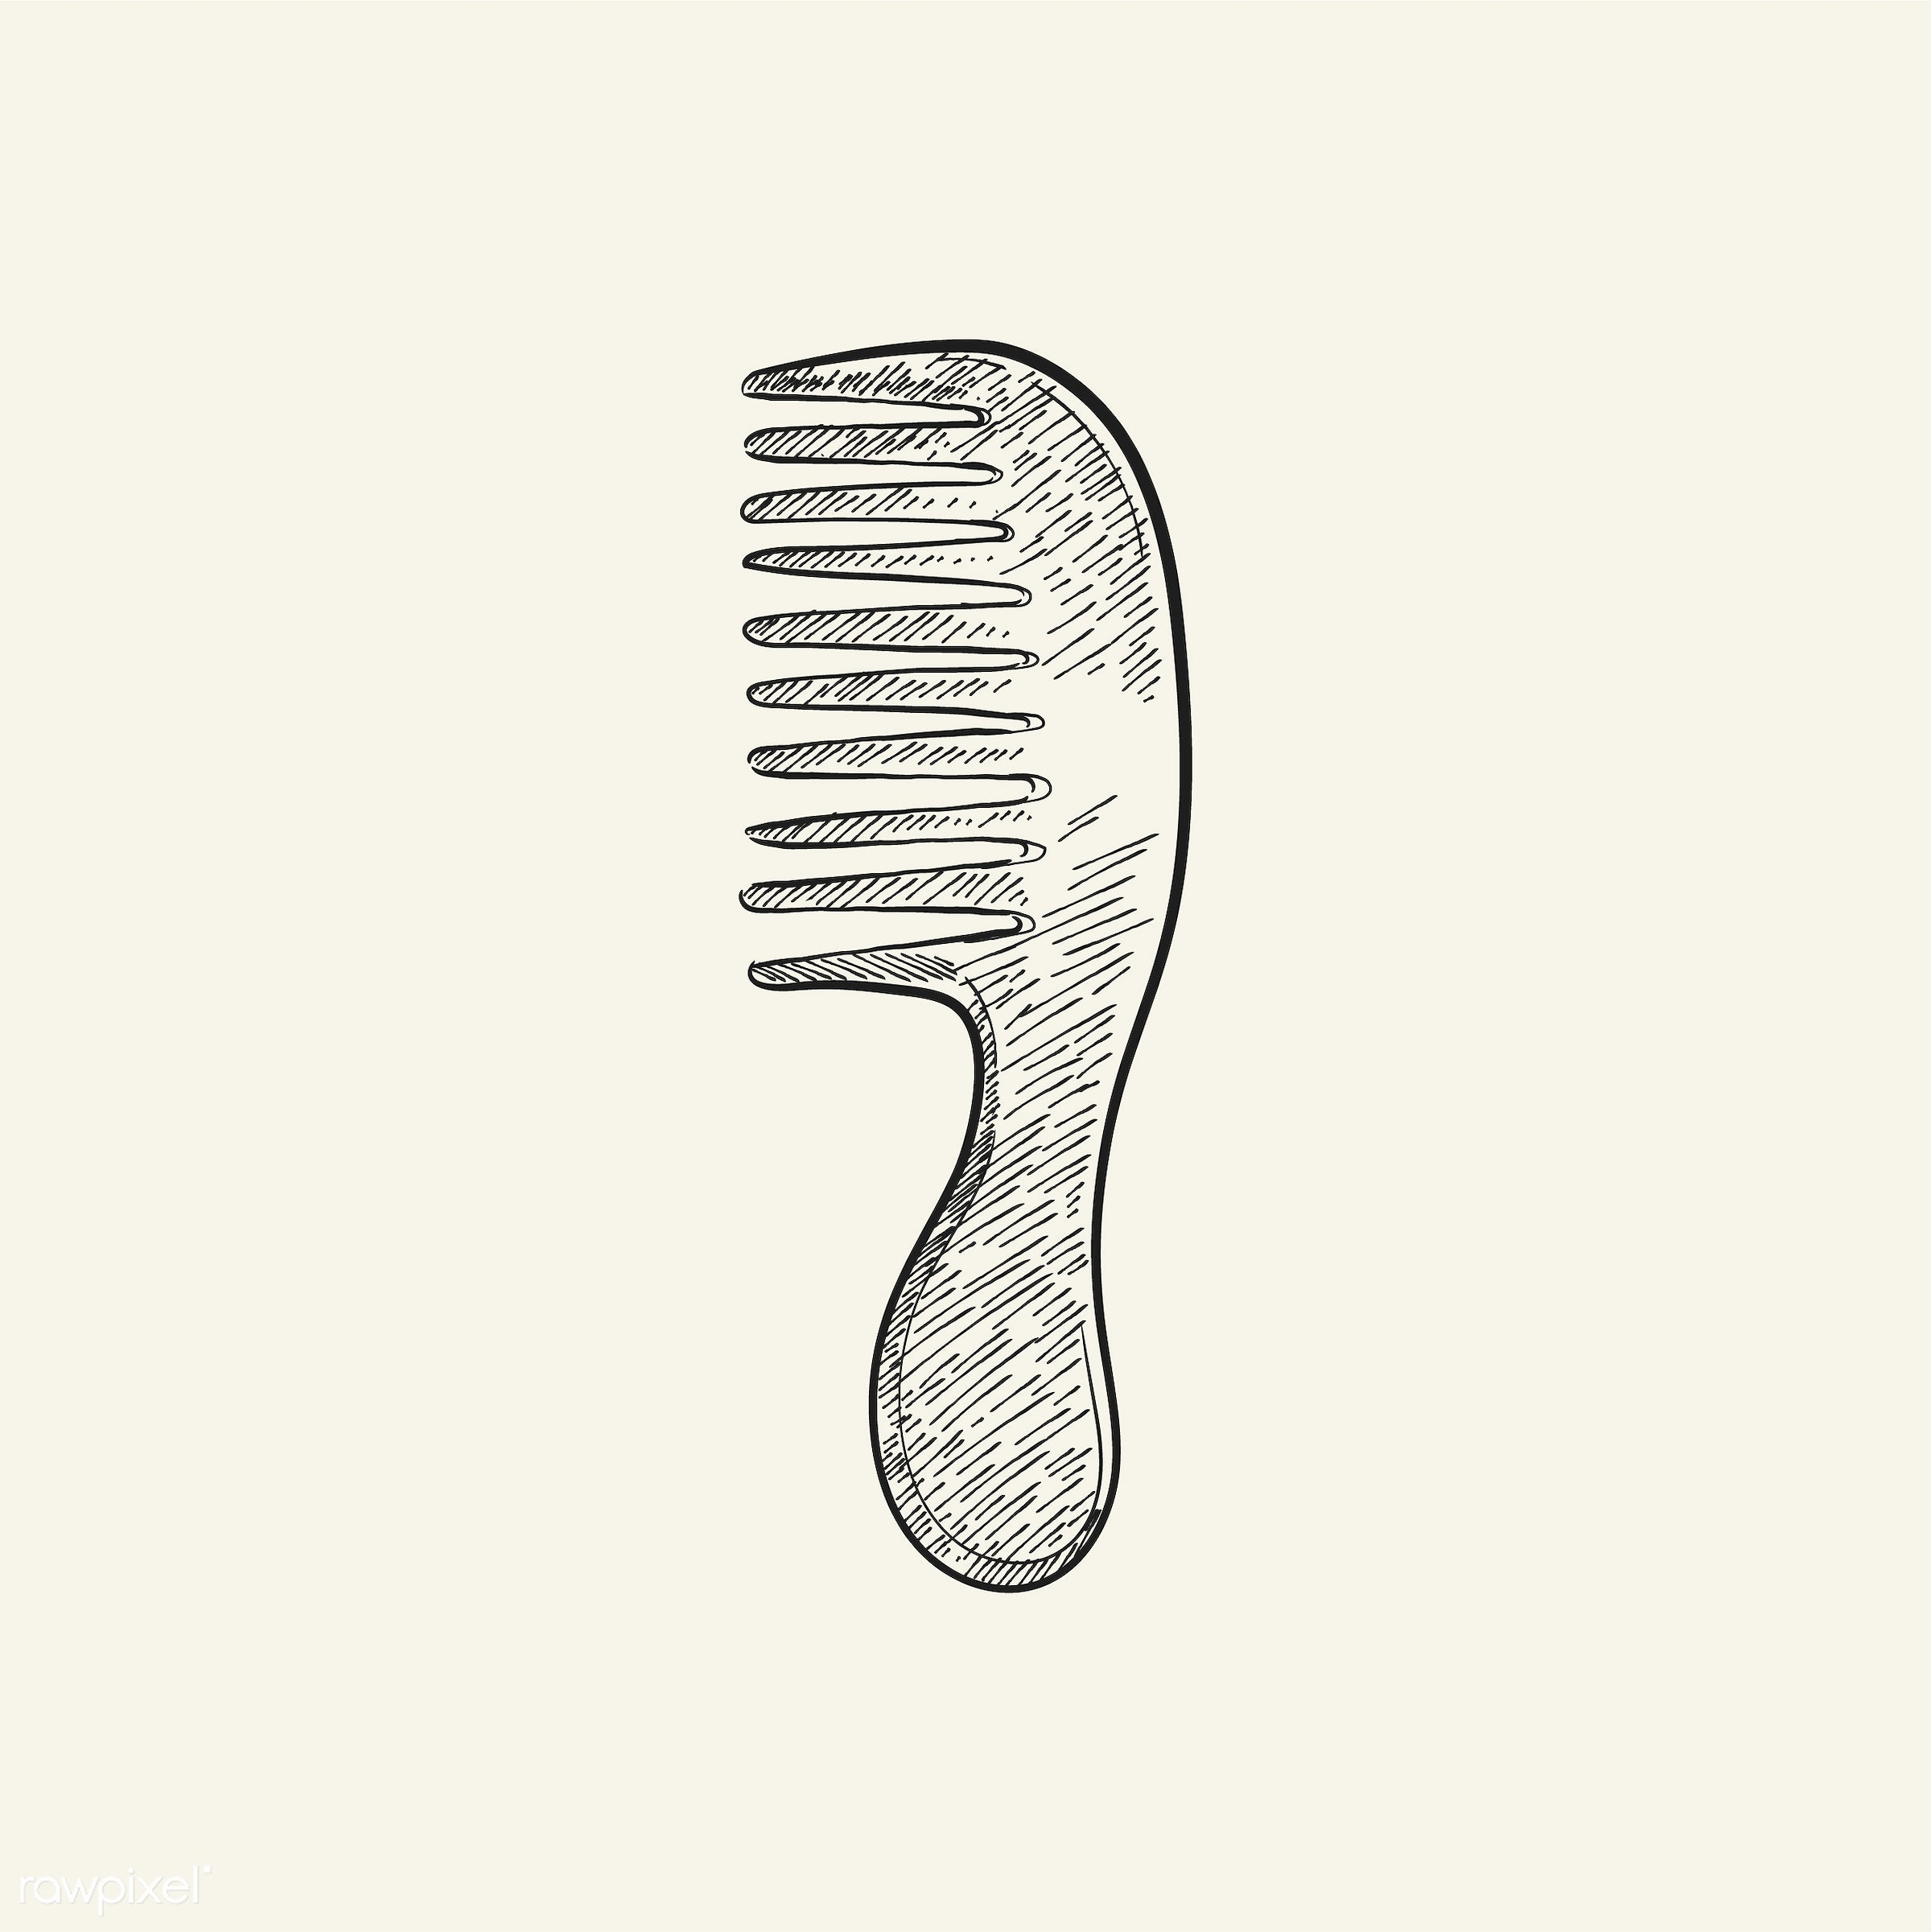 Vintage illustration of a comb - antique, beauty, black, comb, cosmetics, design, drawing, equipment, feminine, graphic,...